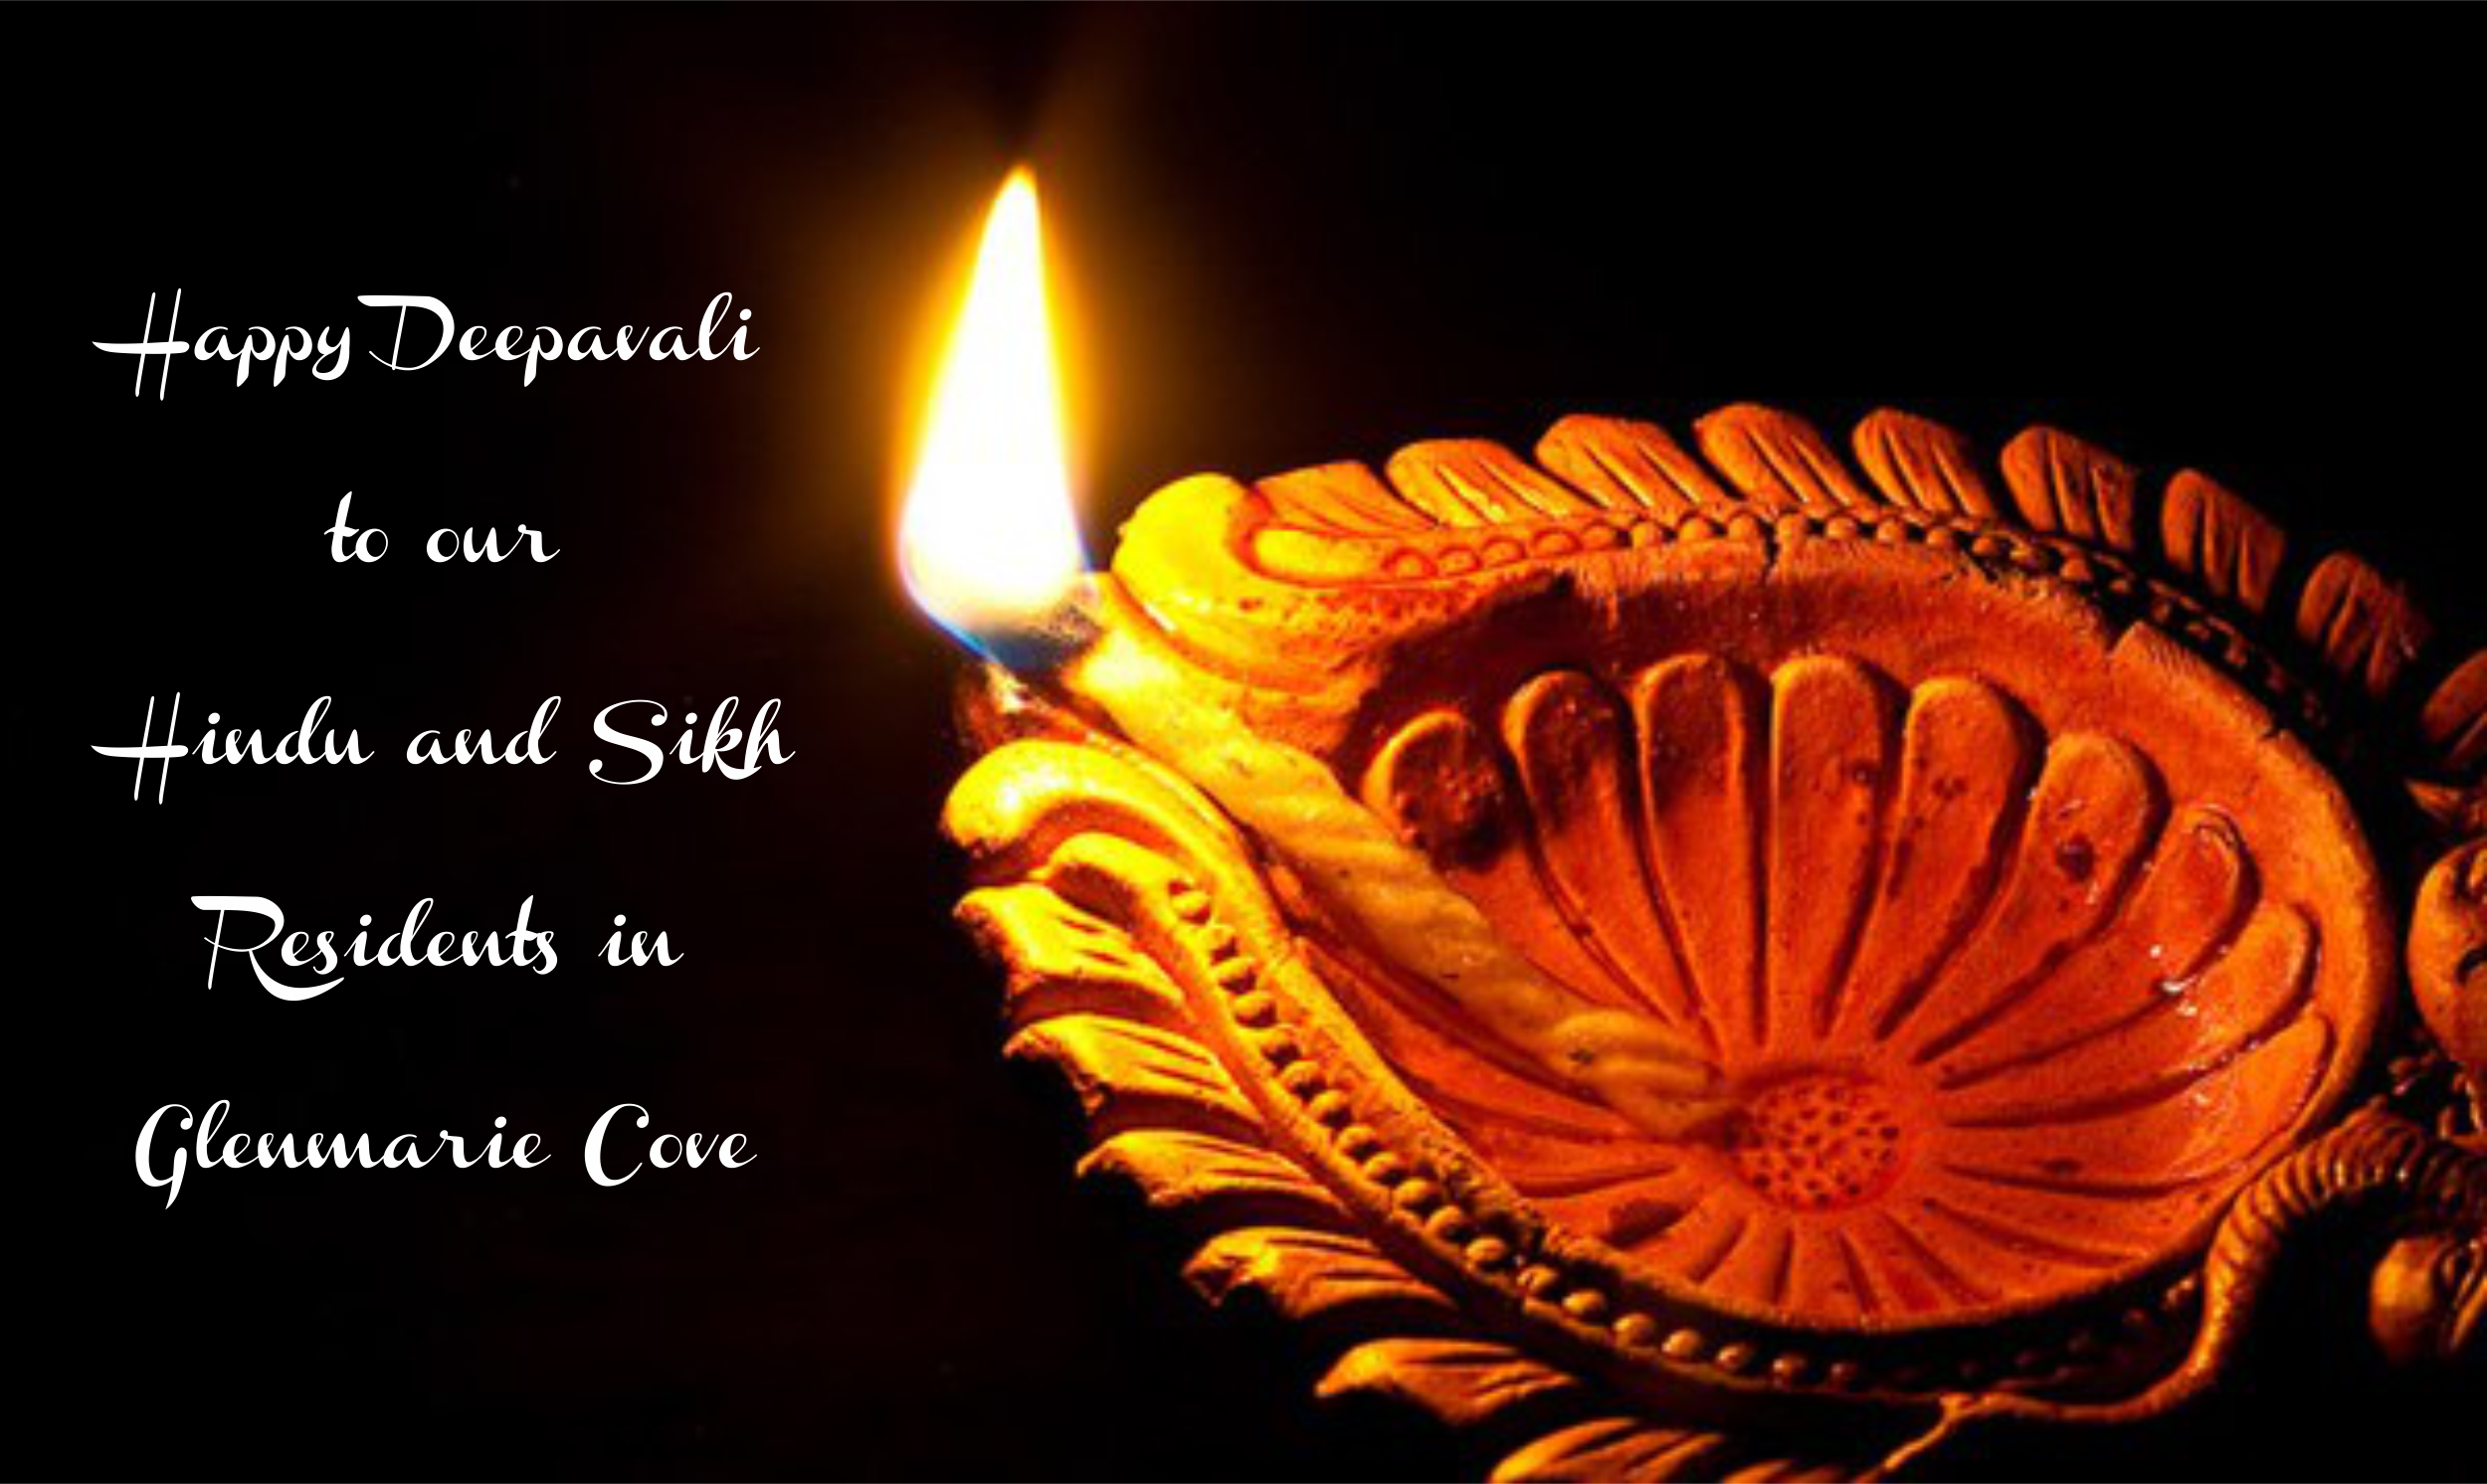 Deepavali Greetings Glenmarie Cove Residents And Owners Association